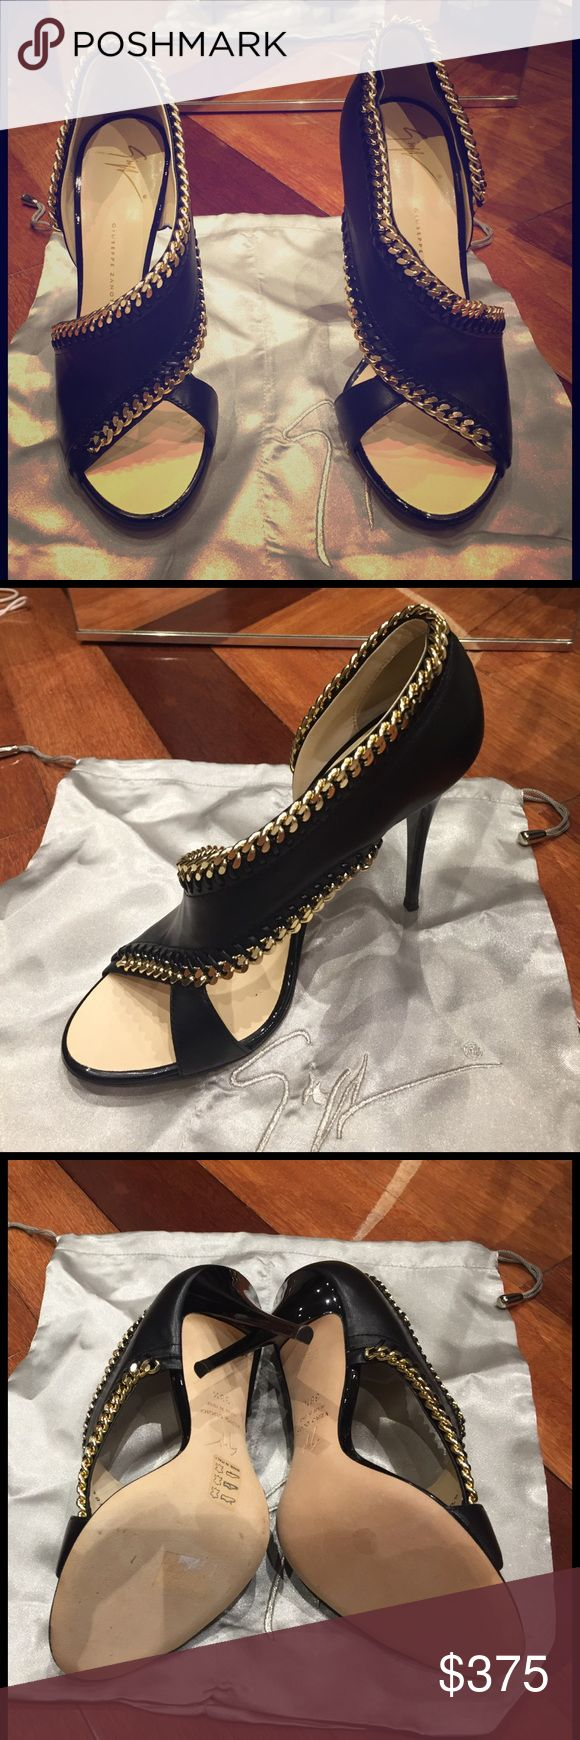 BRAND NEW Giuseppe Zanotti heels Size 38.5. Brand new, with box and dust bag. Purchased from Saks! Beautiful black and gold heels. Giuseppe Zanotti Shoes Heels